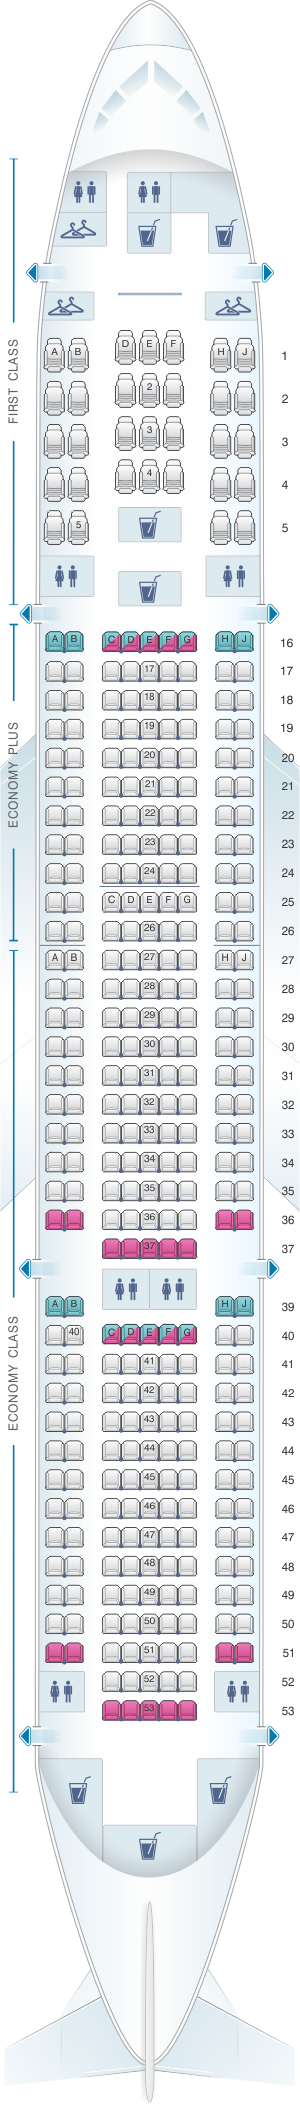 Seat map for United Airlines Boeing B777 200 (777) - version 4